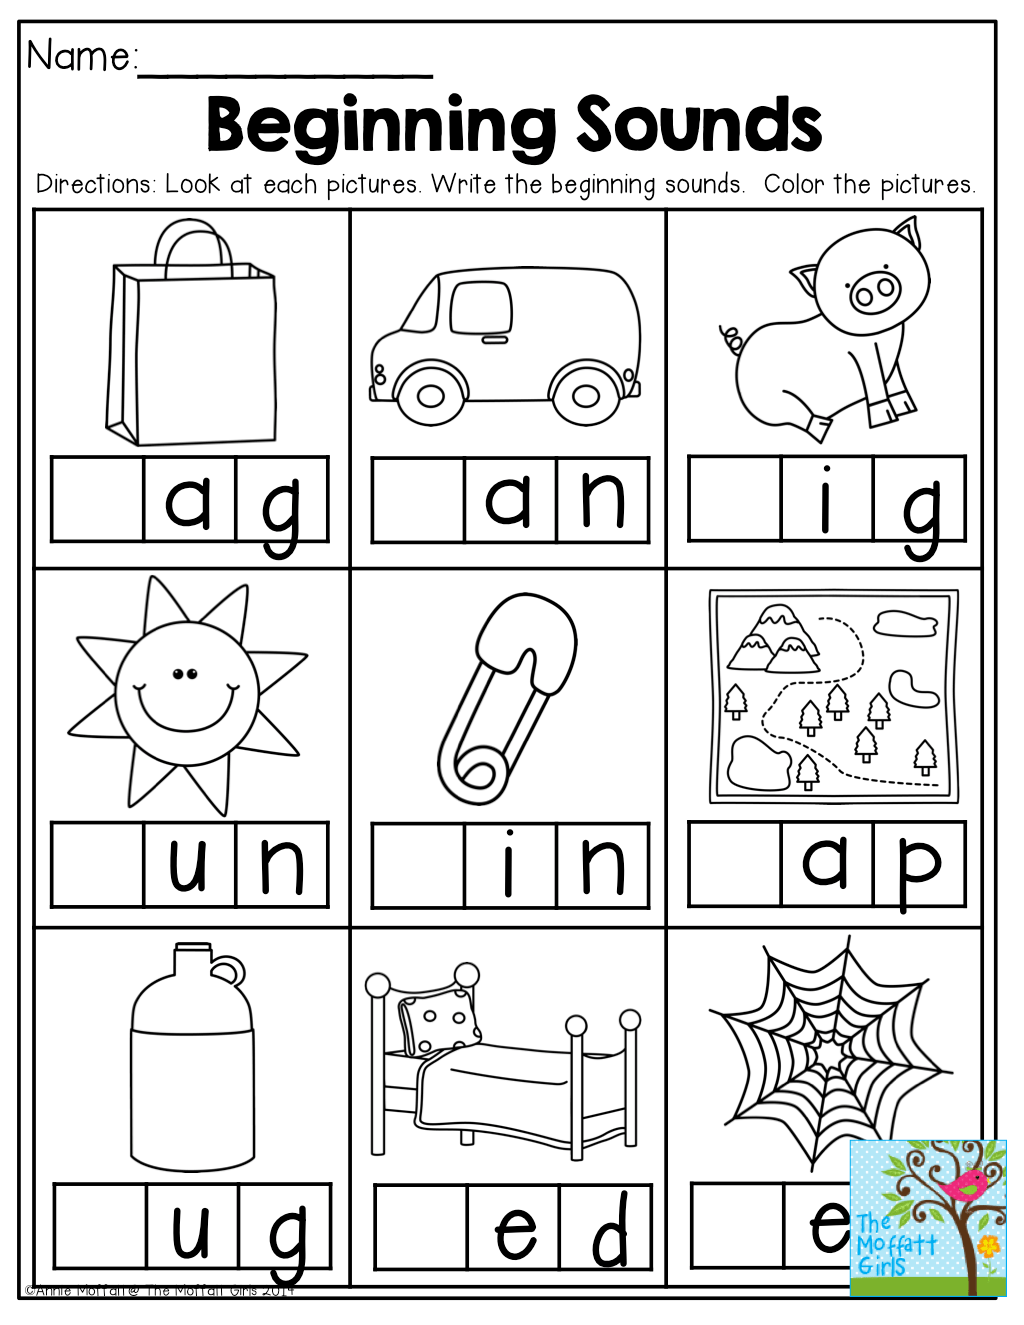 Beginning Sounds And So Many Other Great Printables For Back To School